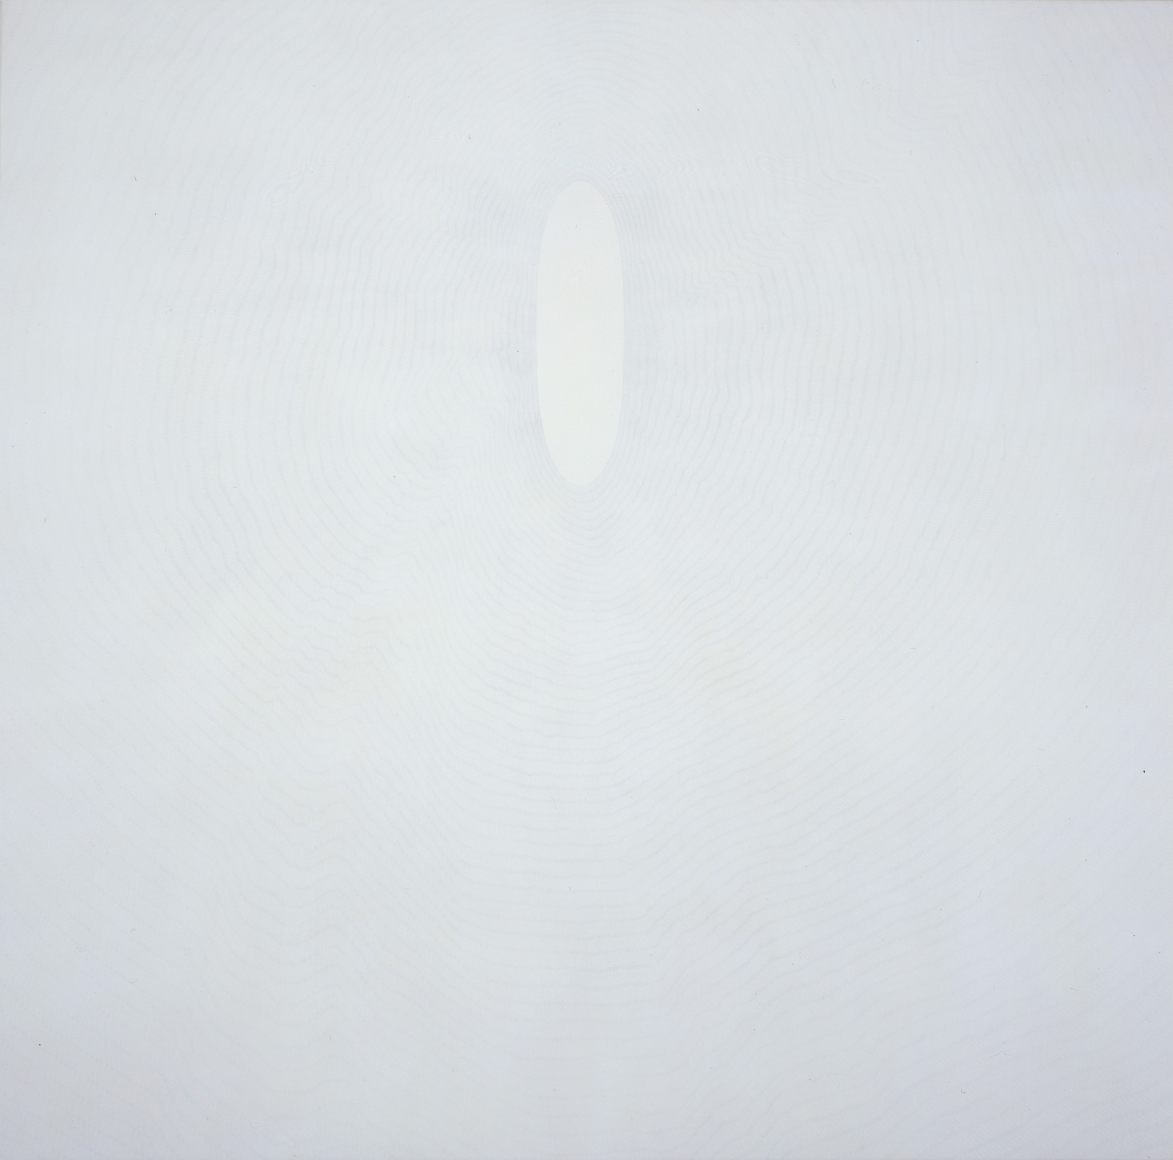 SHIRAZEH HOUSHIARY White shadow, 1998